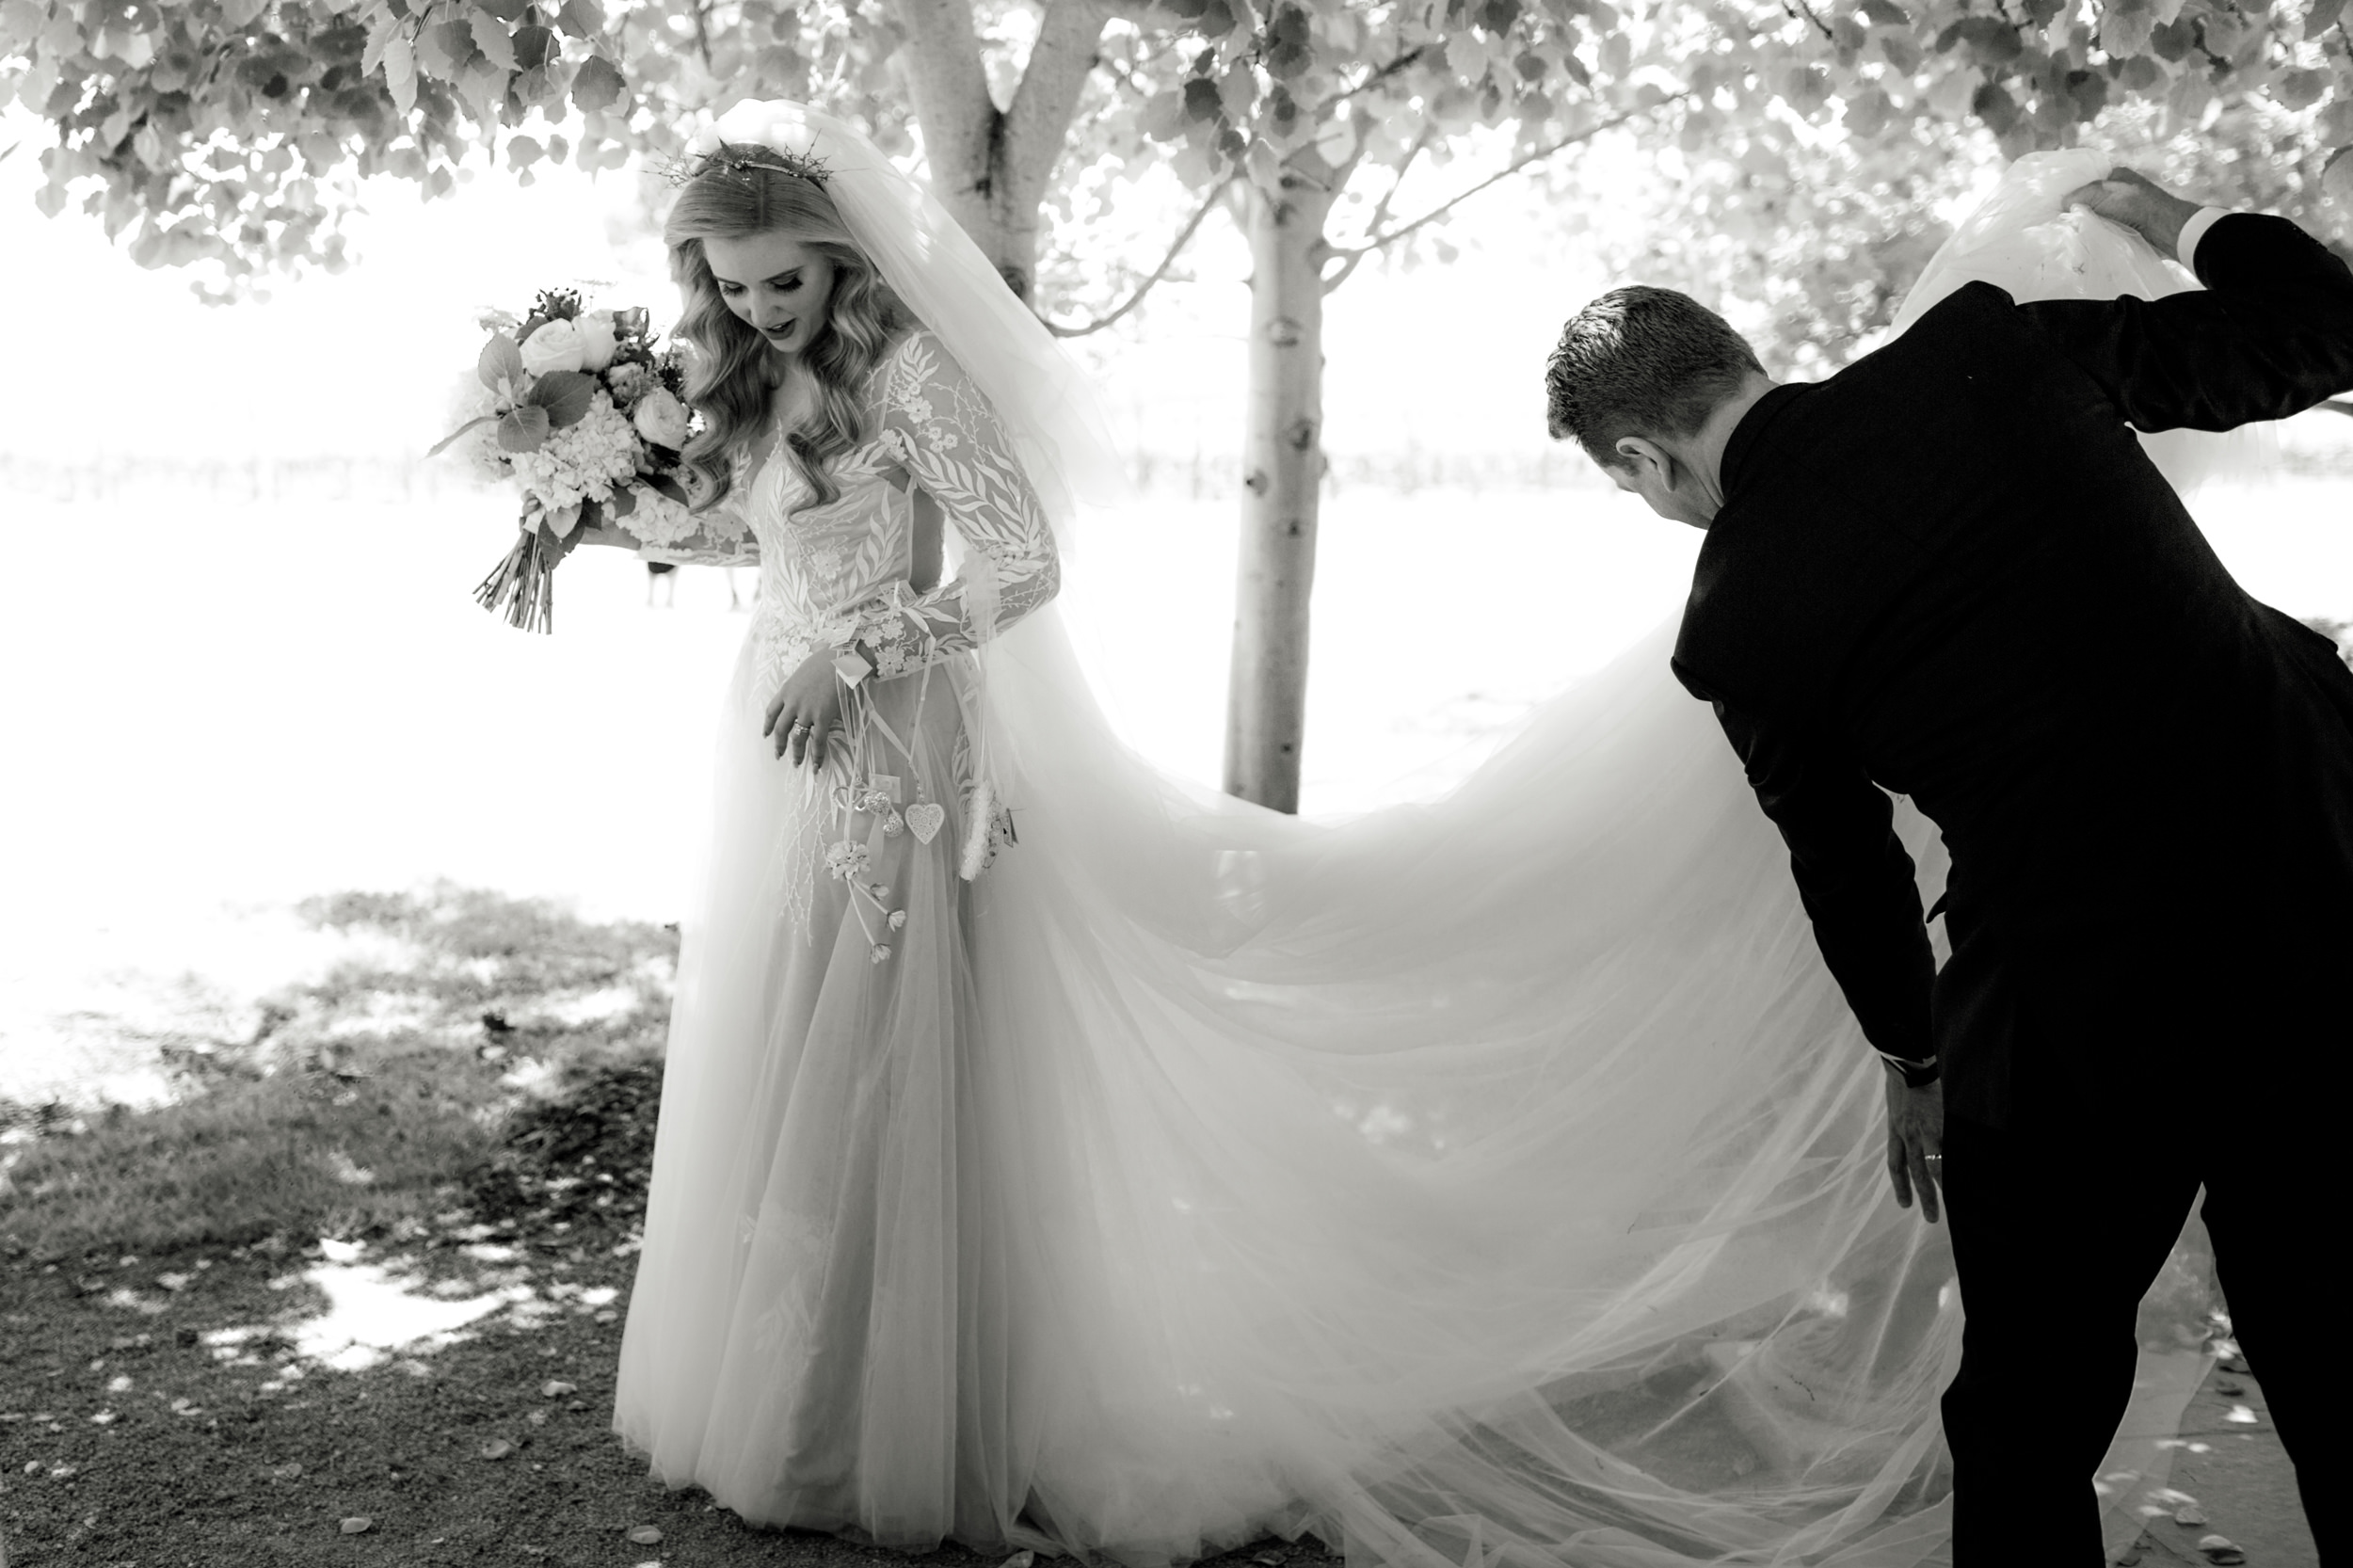 I-Got-You-Babe-&.Co.-Stones-of-the-Yarra-Valley-Wedding-Beverly-Ross0093.JPG